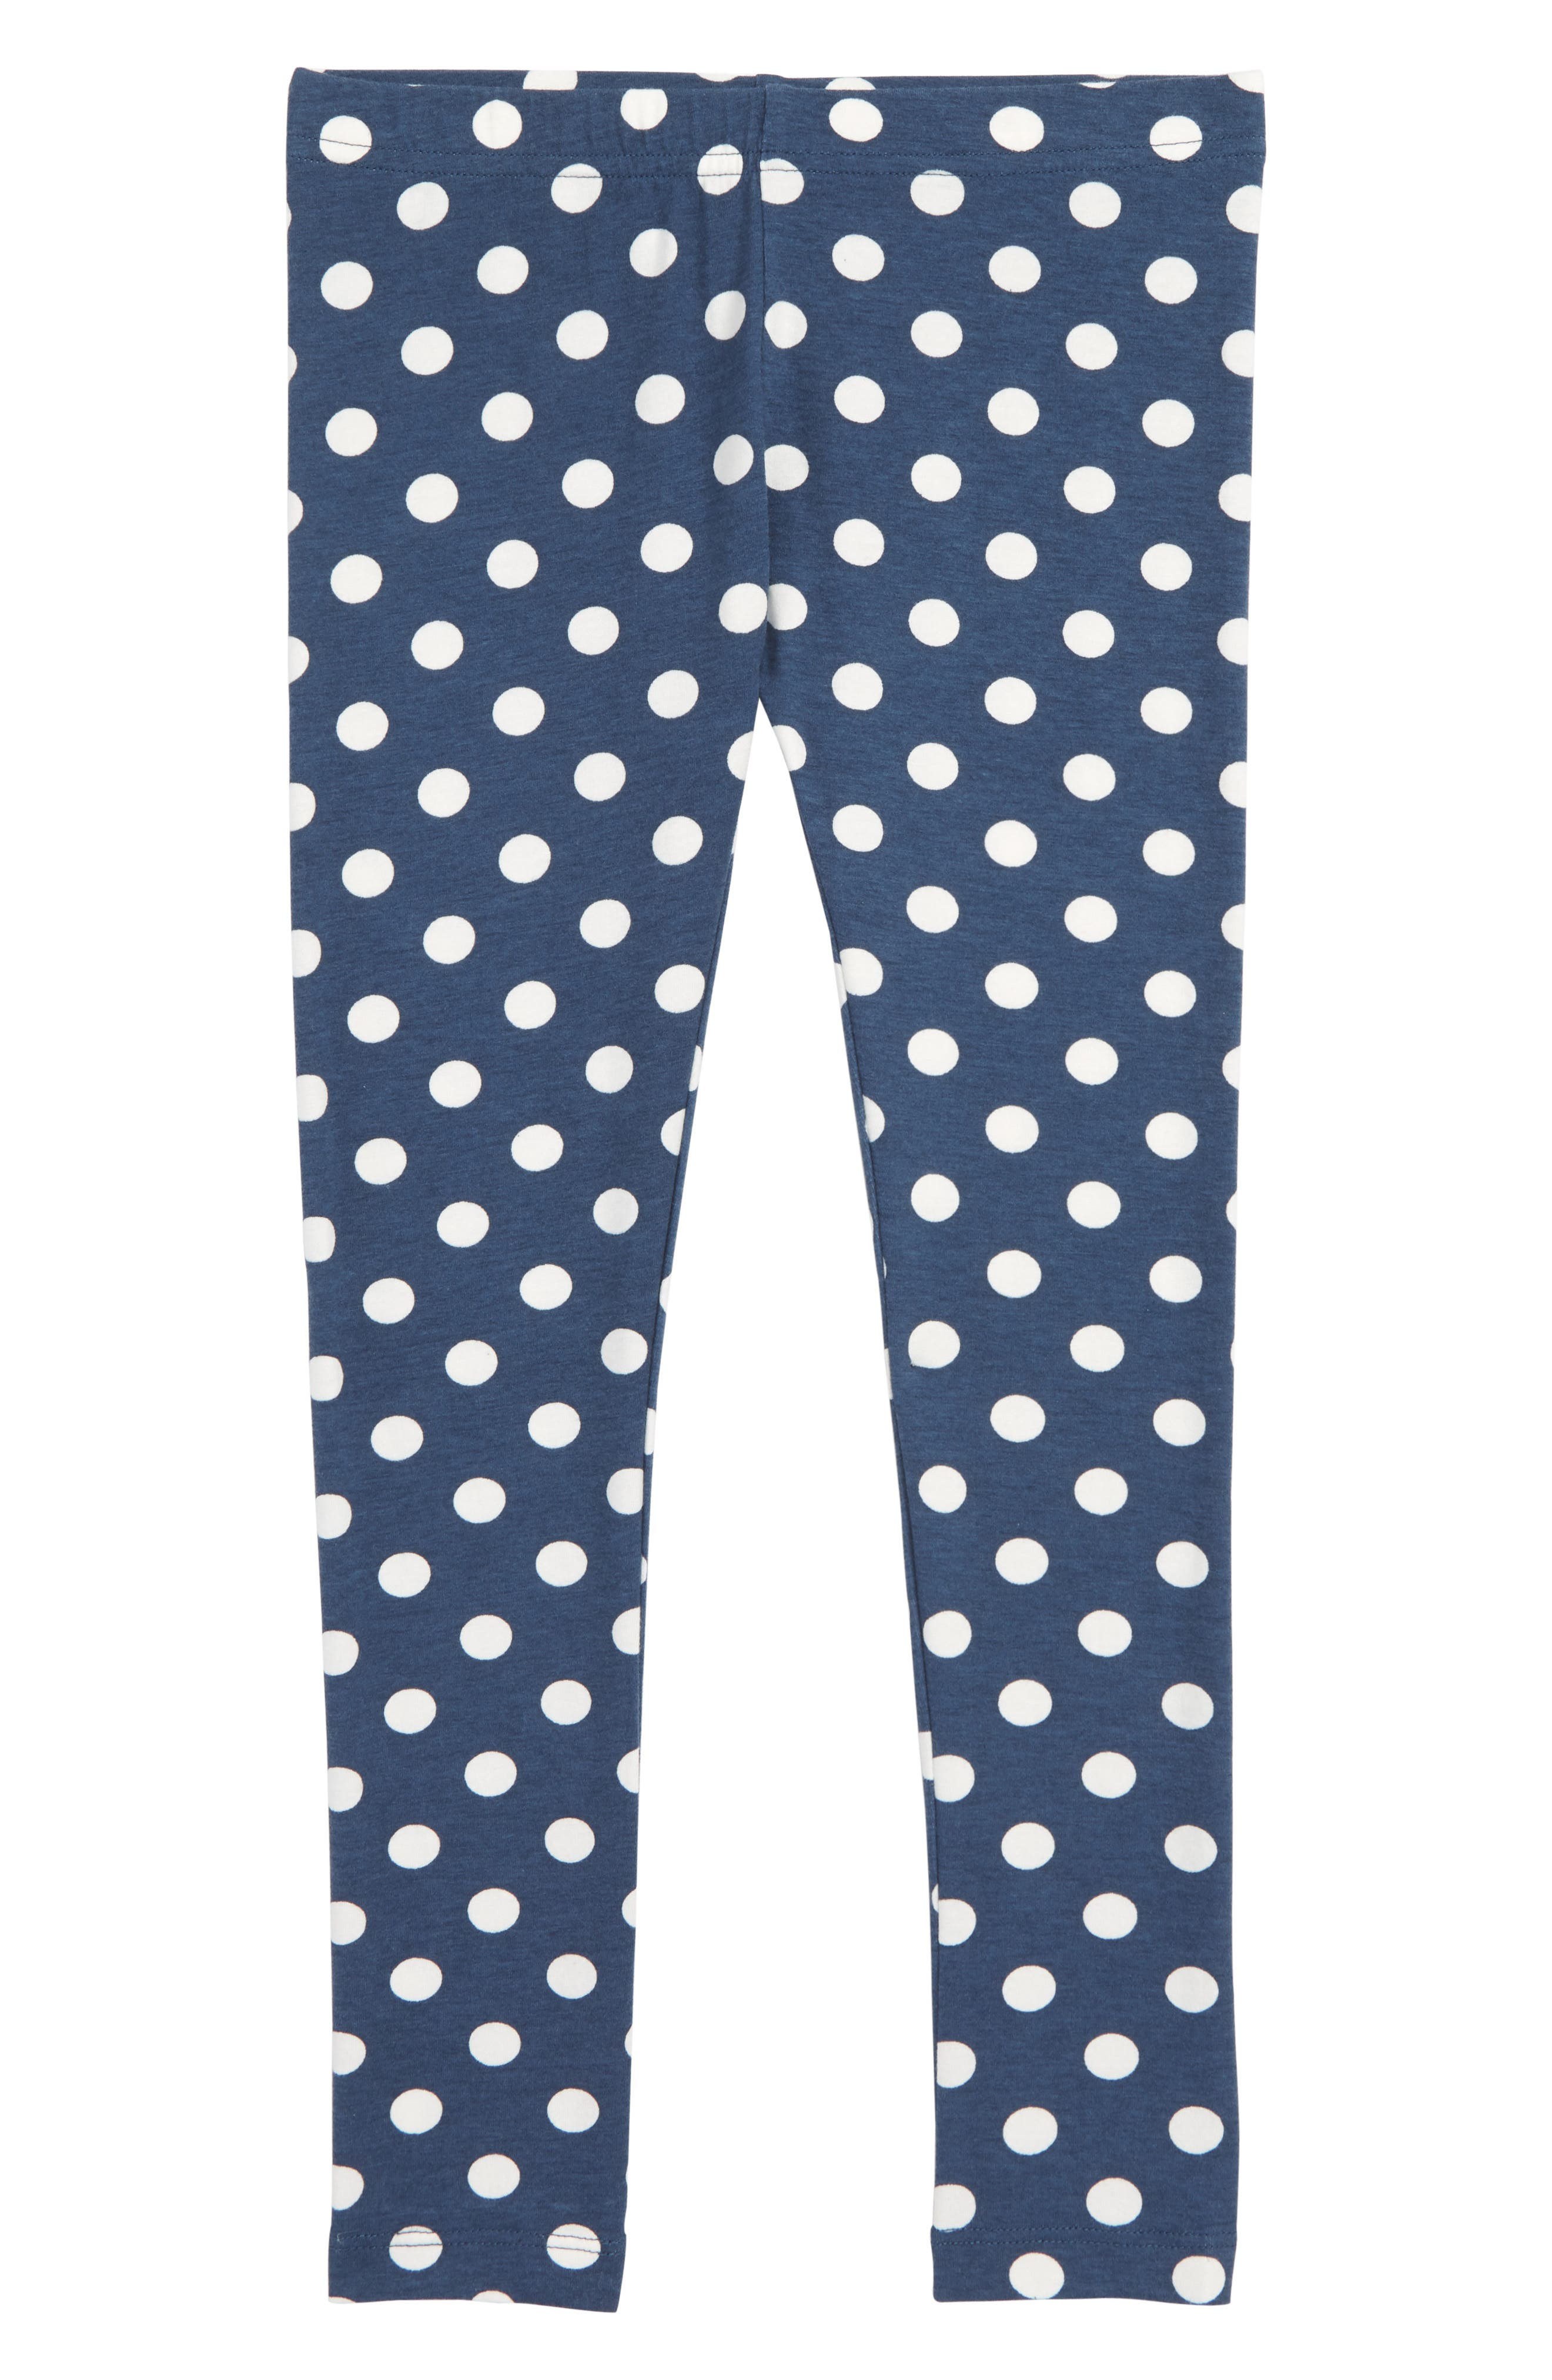 TUCKER + TATE, 'Core' Print Leggings, Main thumbnail 1, color, NAVY DENIM DOT